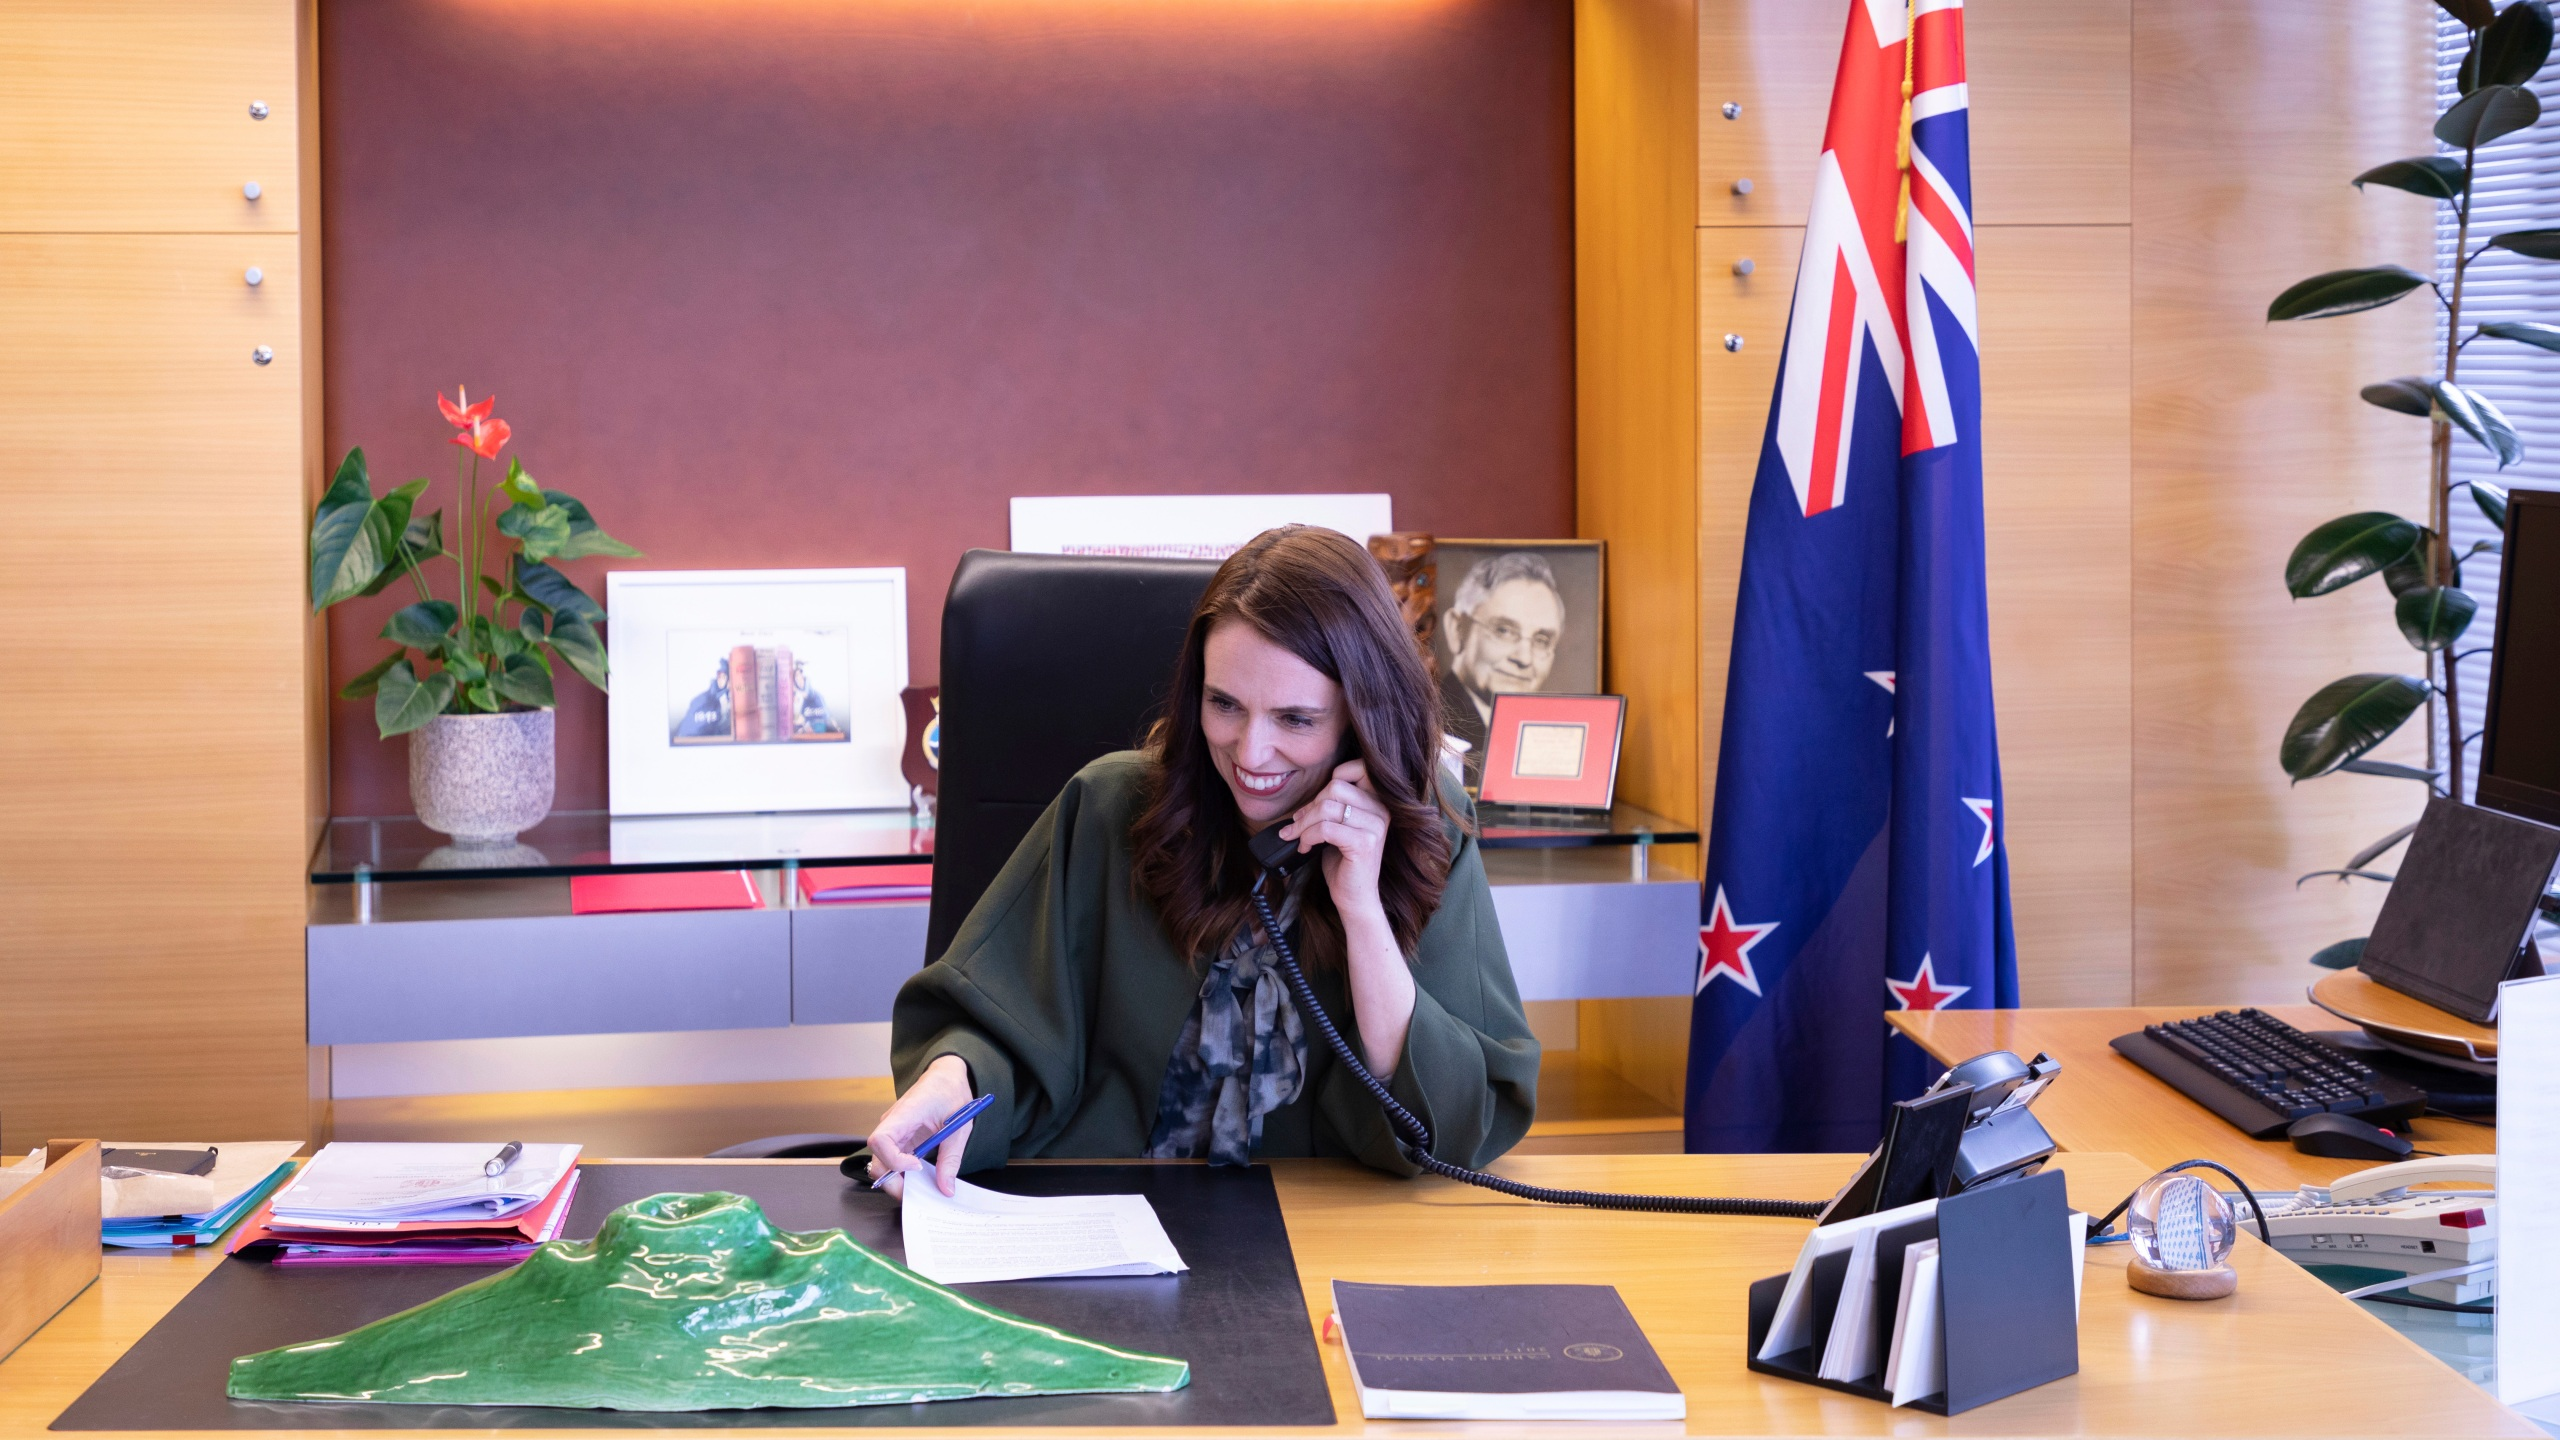 In this photo provided by New Zealand Prime Minister's Office, Prime Minister Jacinda Ardern talks with U.S. President-elect Joe Biden on phone at her office in Wellington, New Zealand, Monday, Nov. 23, 2020. (New Zealand Prime Minister's Office via AP)